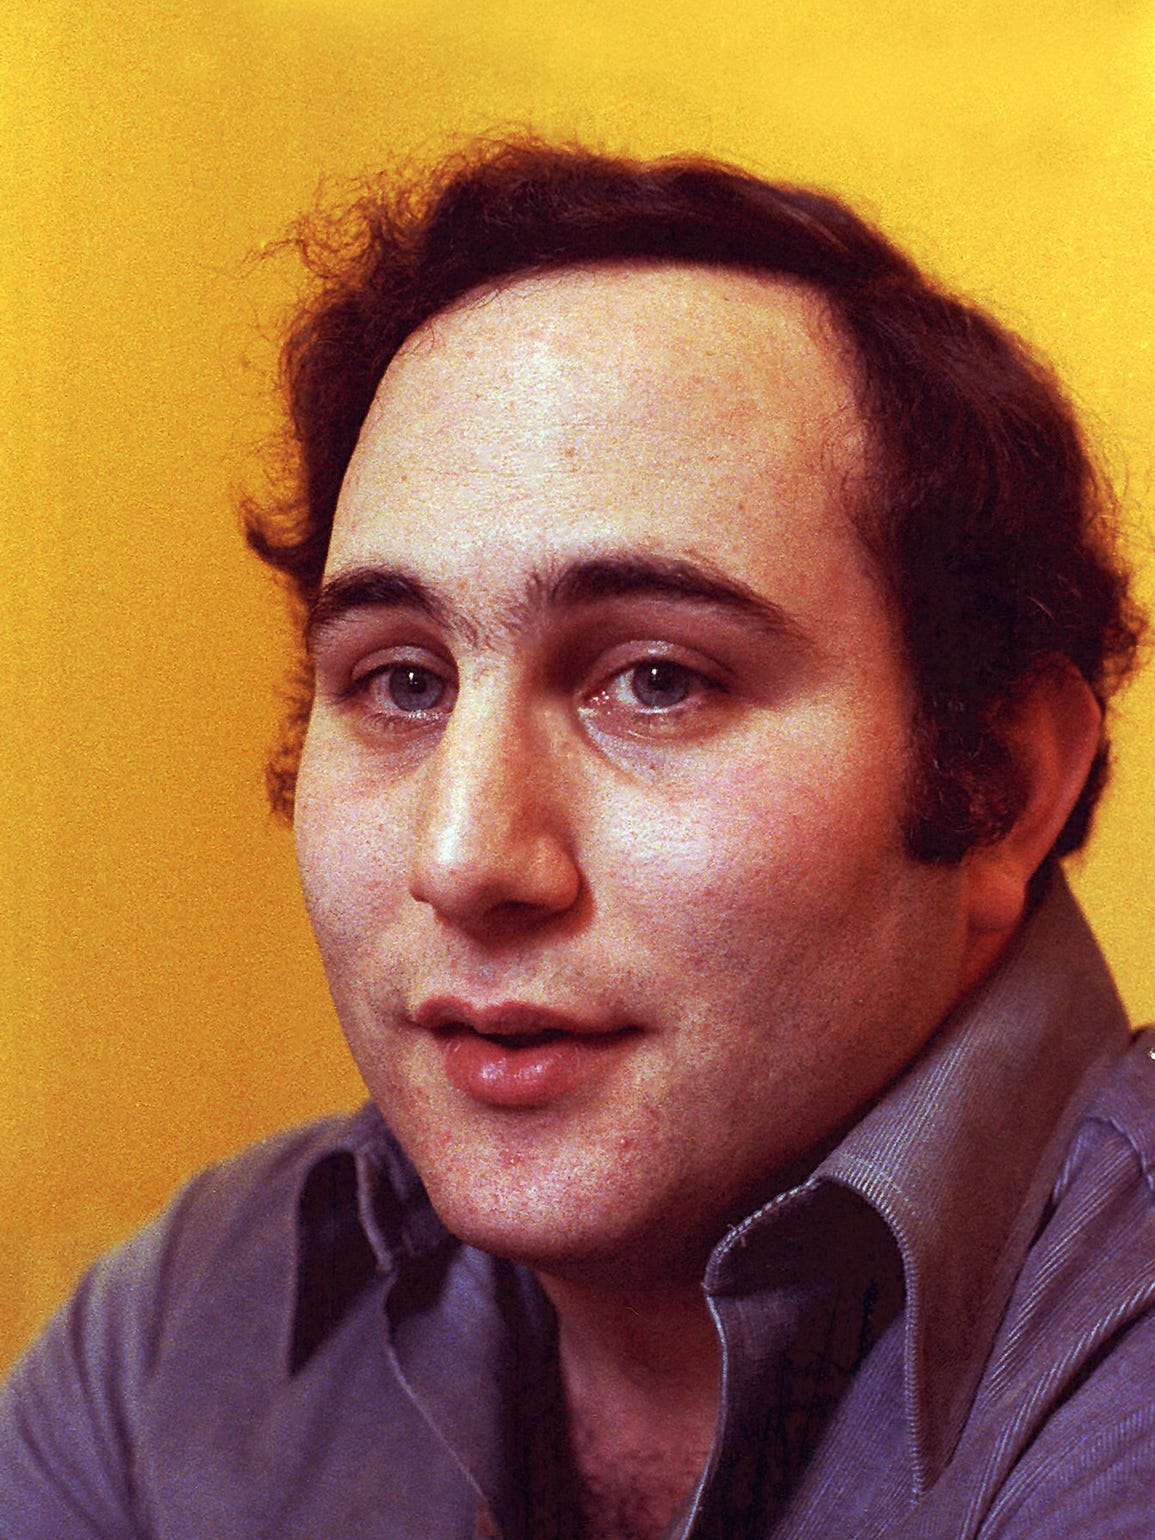 david berkowitz a serial killer David berkowitz aka son of sam is a serial killer from us who murdered six people in new york city between 1976 and 1977 he plunged the city into the largest manhunt in new york history also known as son of sam, he was arrested on august 10, and was sentenced to six consecutive 25-years-to-life terms.